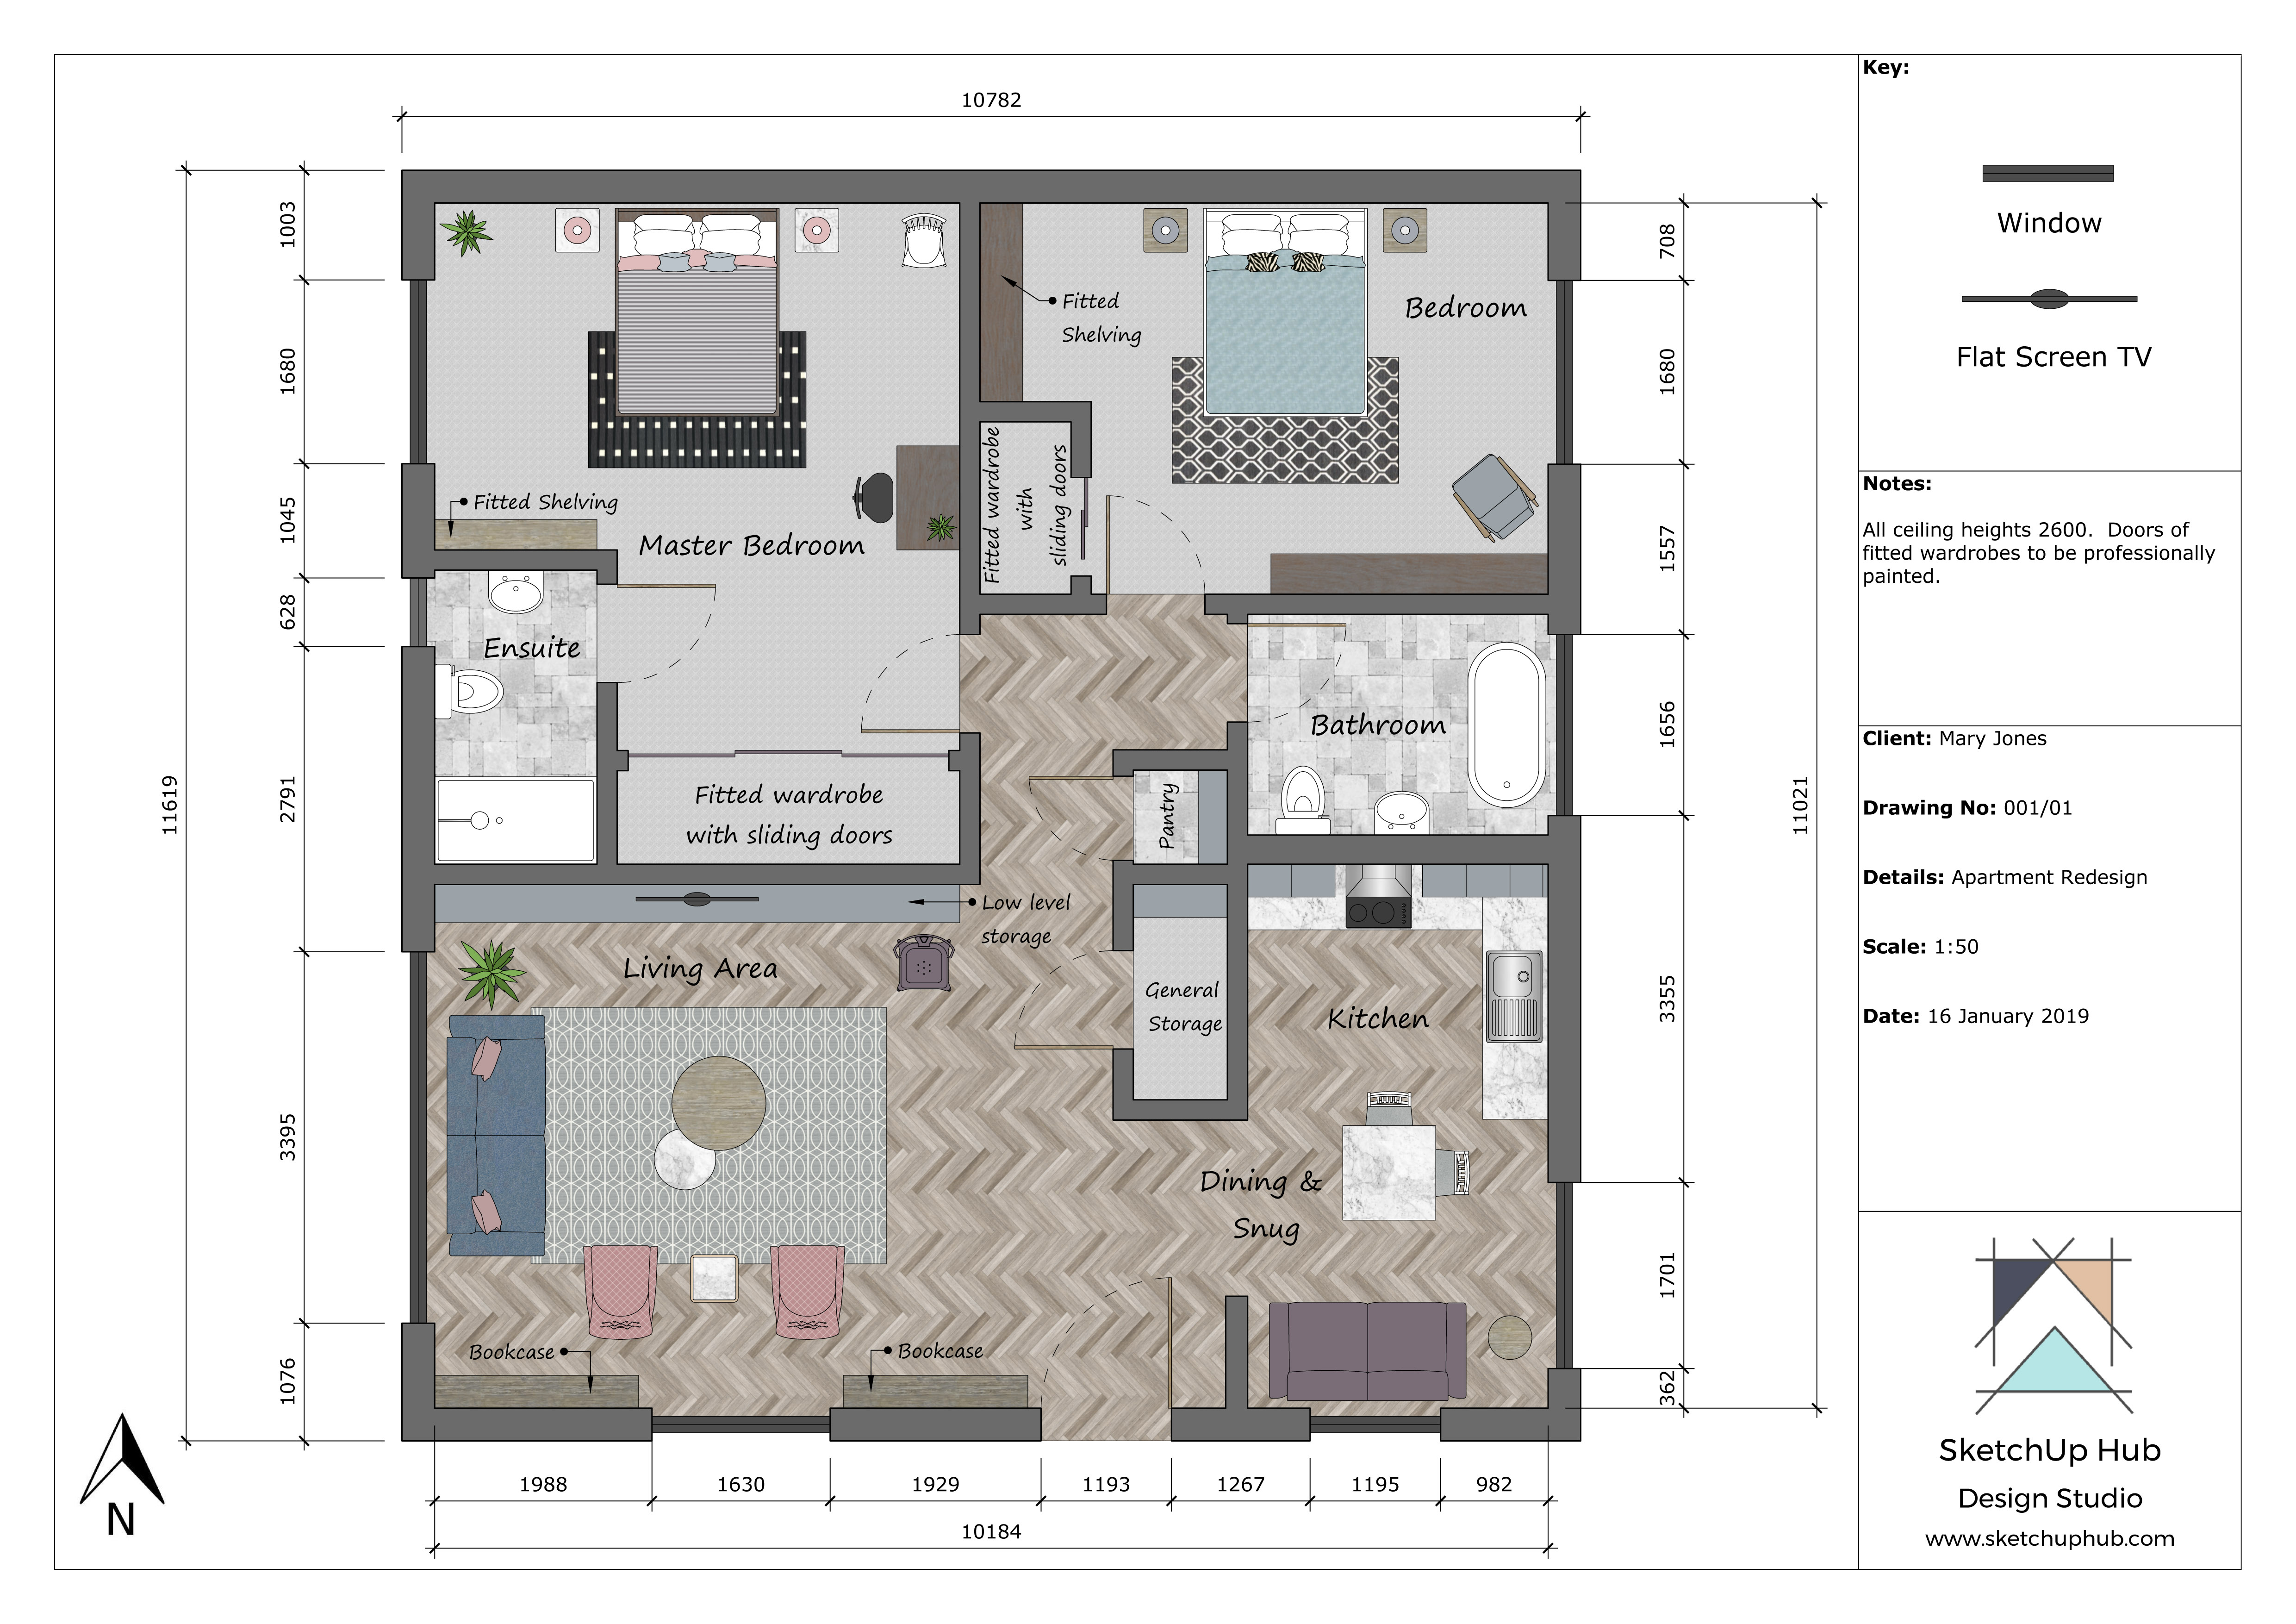 . Expert Tips on How to Create a Professional Floor Plan   SketchUp Hub